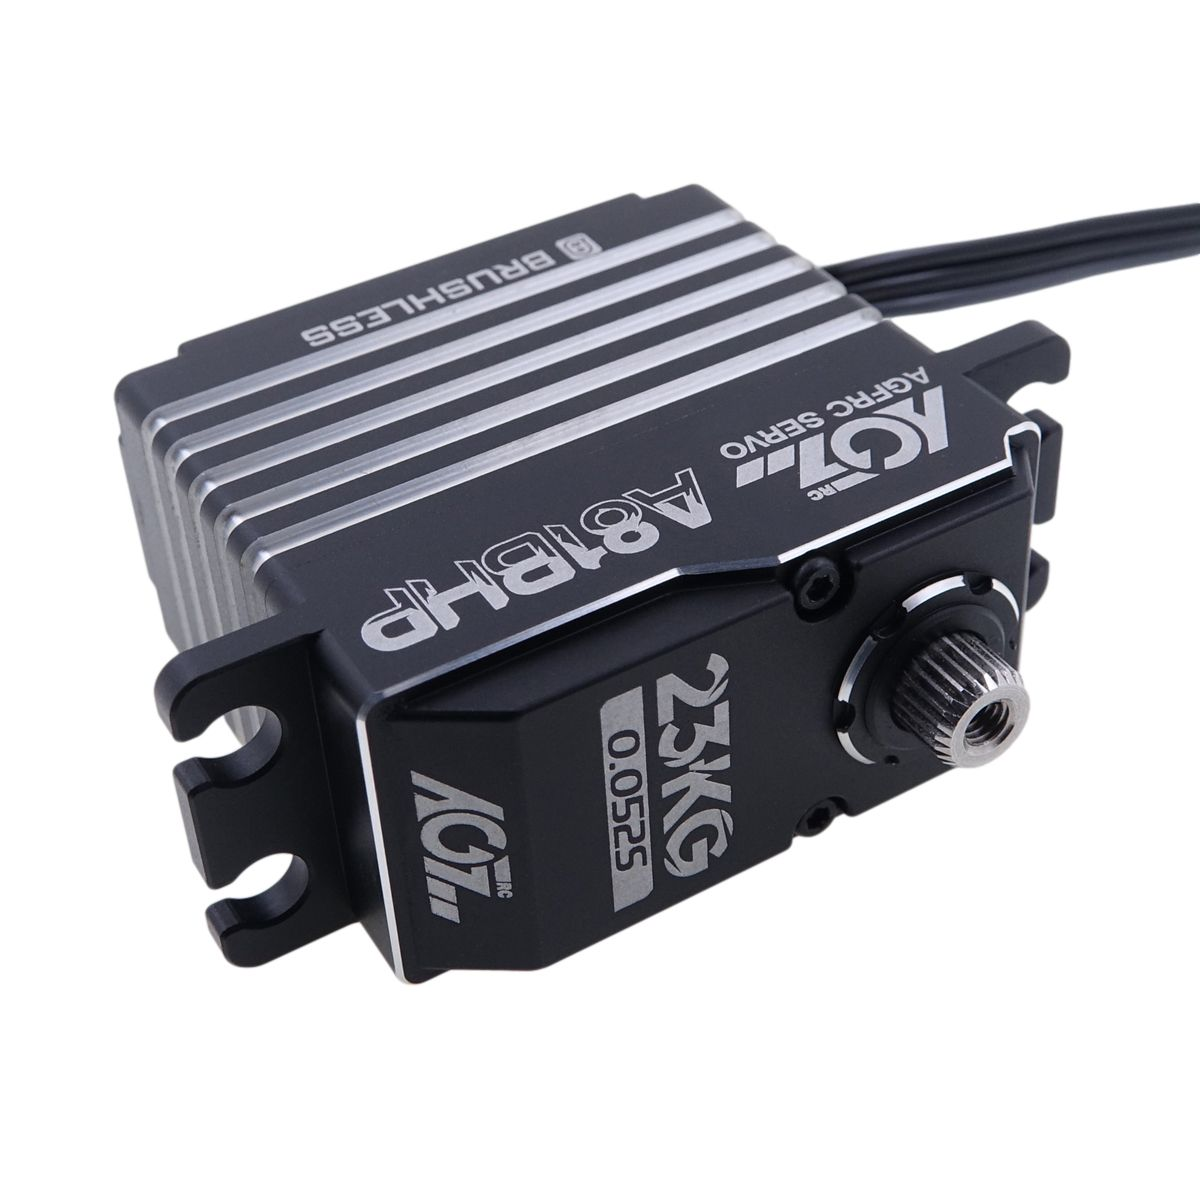 A81BHP Aluminum Case 19KG 0.06Sec 7.4V Robust Steel Gears and Shafts 180 Degree Brushless Servo Motor for RC Helicopter Robot Car